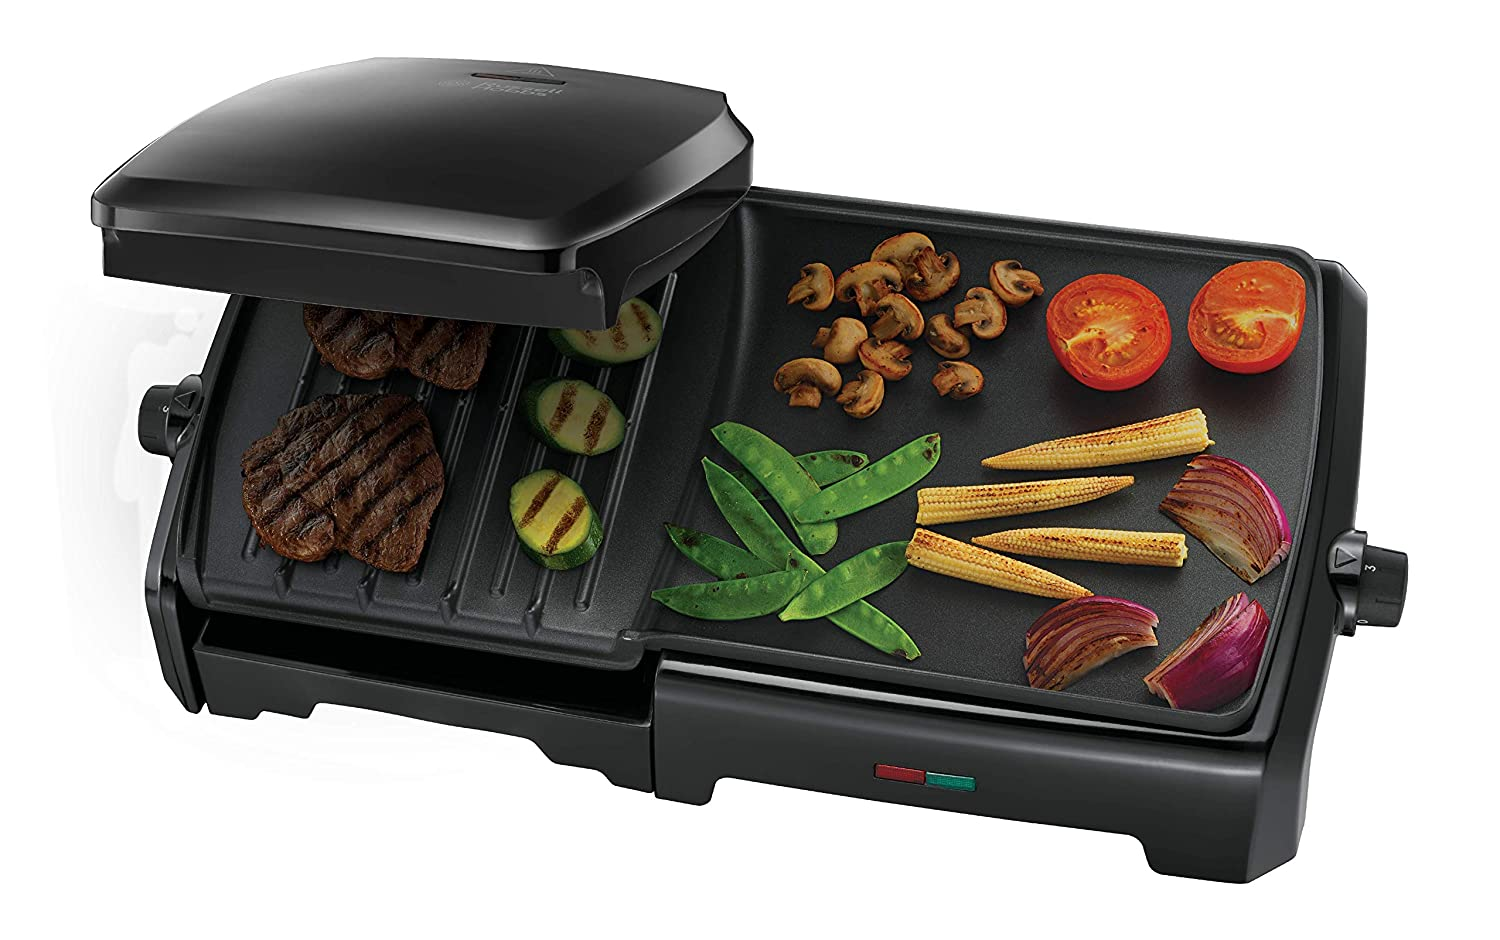 George Foreman 23450 10-Portion Entertaining Grill and Griddle, 2180 W, Black [Energy Class A]